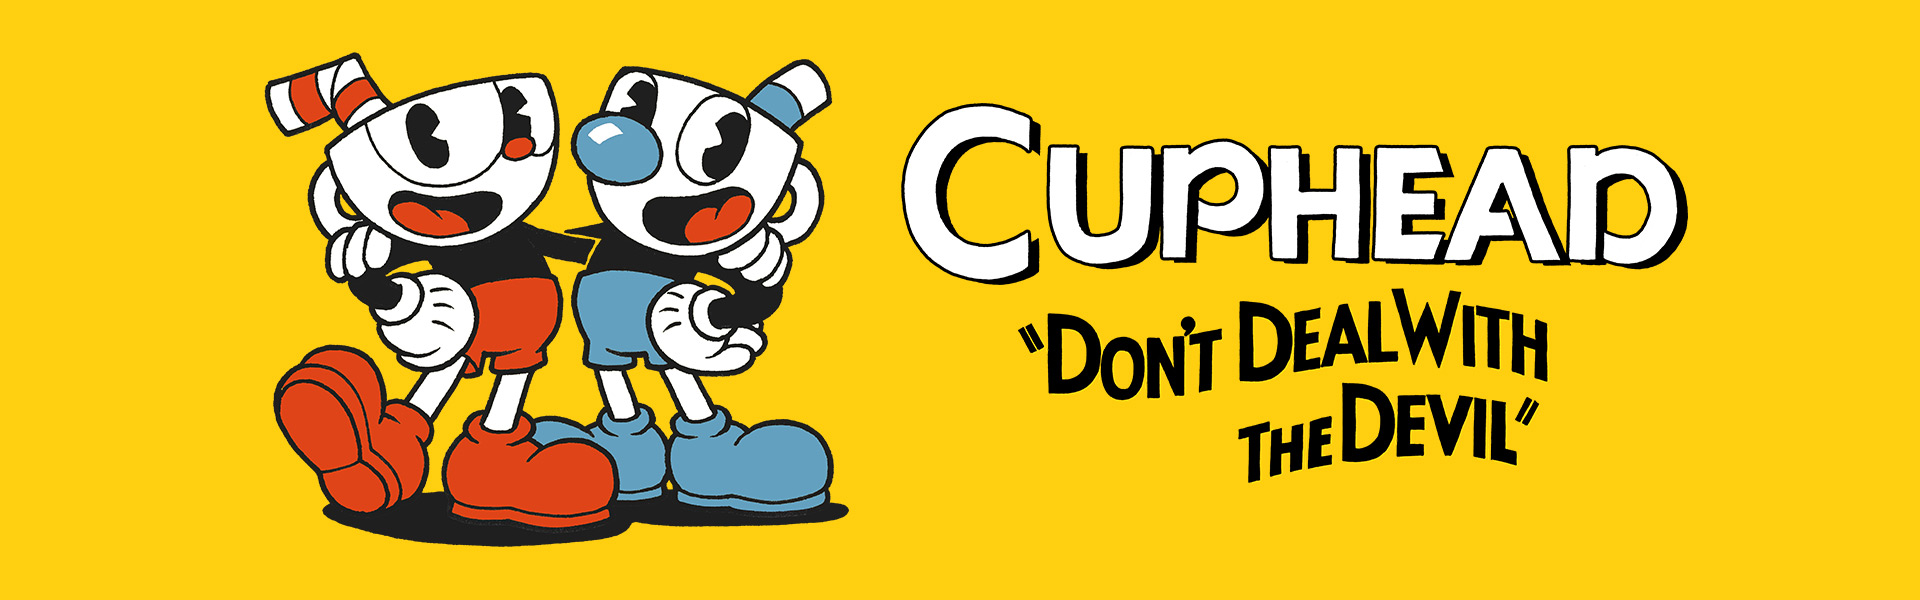 Cuphead, Don't Deal with the Devil, de personages Cuphead Mugman en Ms. Chalice die poseren